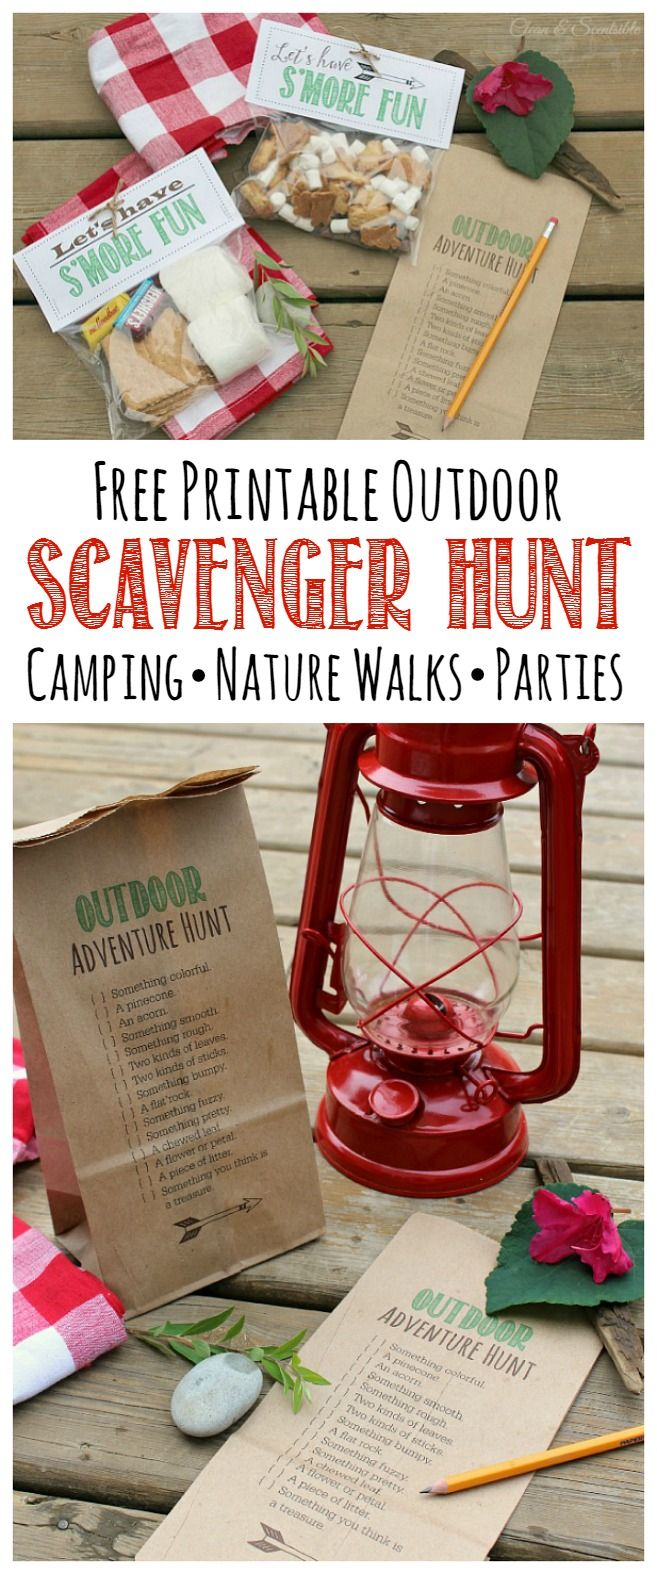 Free printable outdoor scavenger hunt. Print this directly onto a paper bag so your kiddos have somewhere to collect all of their goodies! Perfect for camping, nature walks, and camping parties!